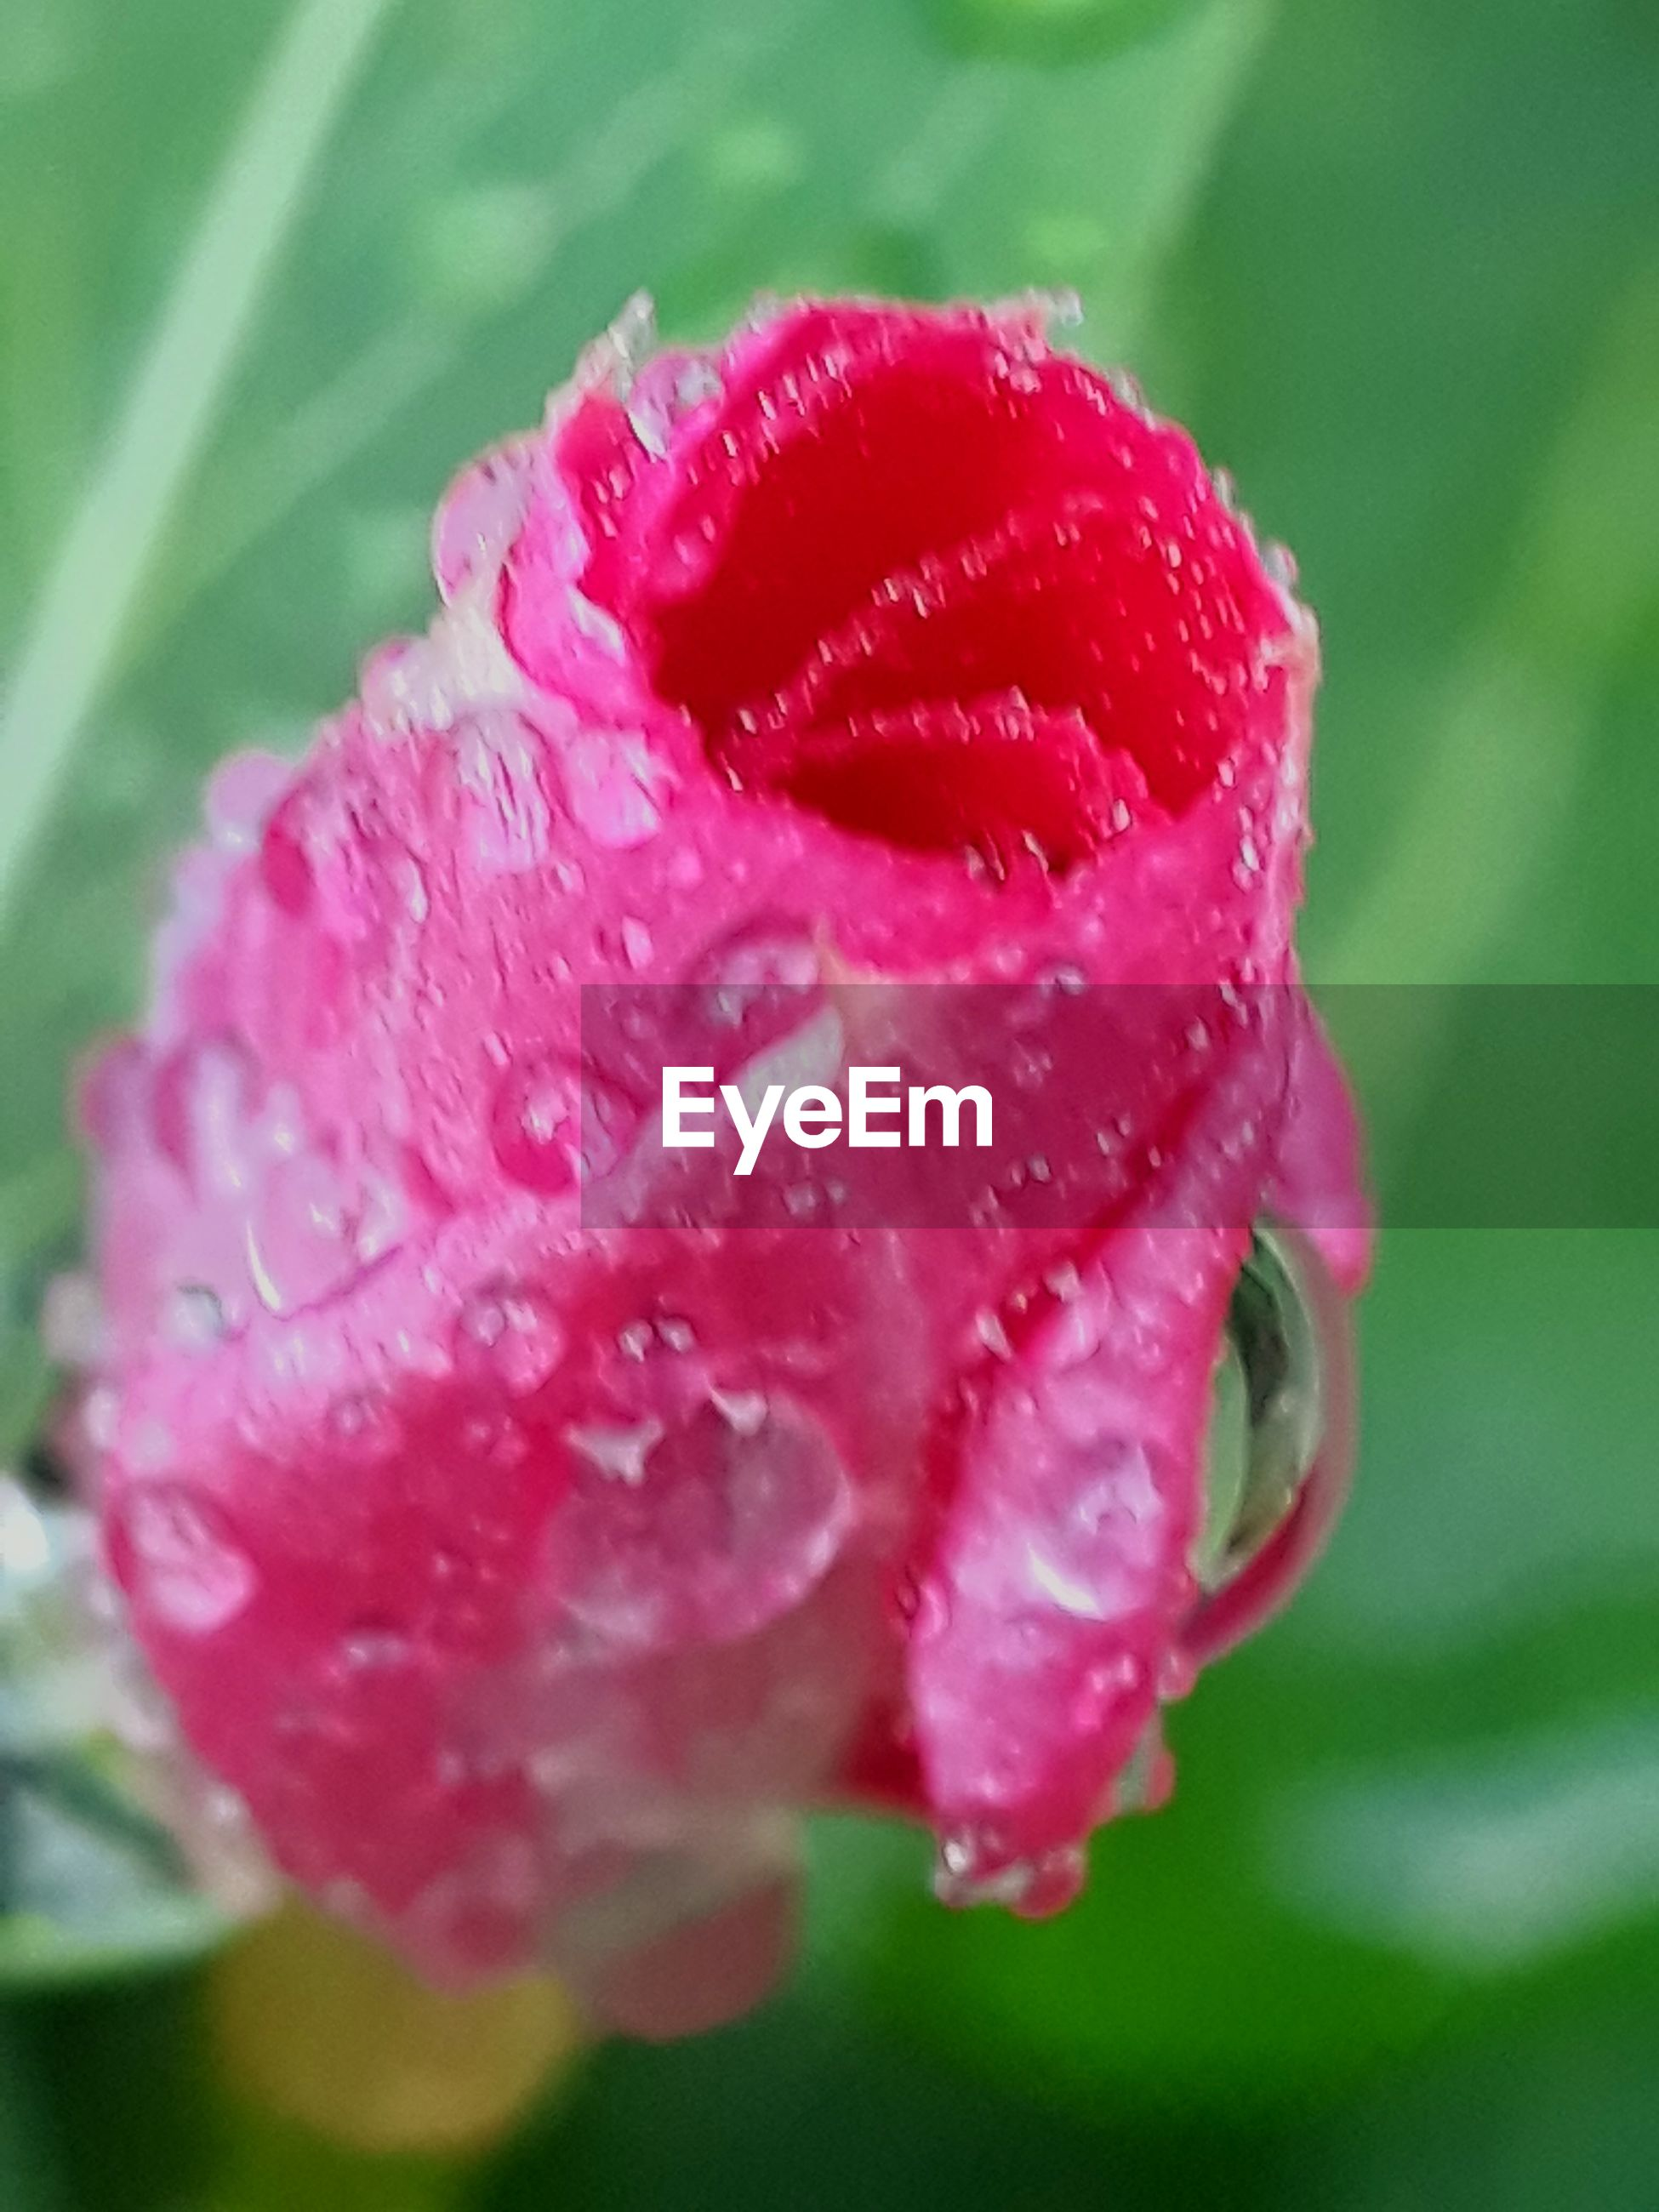 flowering plant, flower, vulnerability, fragility, petal, freshness, plant, beauty in nature, growth, inflorescence, pink color, close-up, flower head, water, drop, wet, nature, no people, outdoors, dew, softness, purity, raindrop